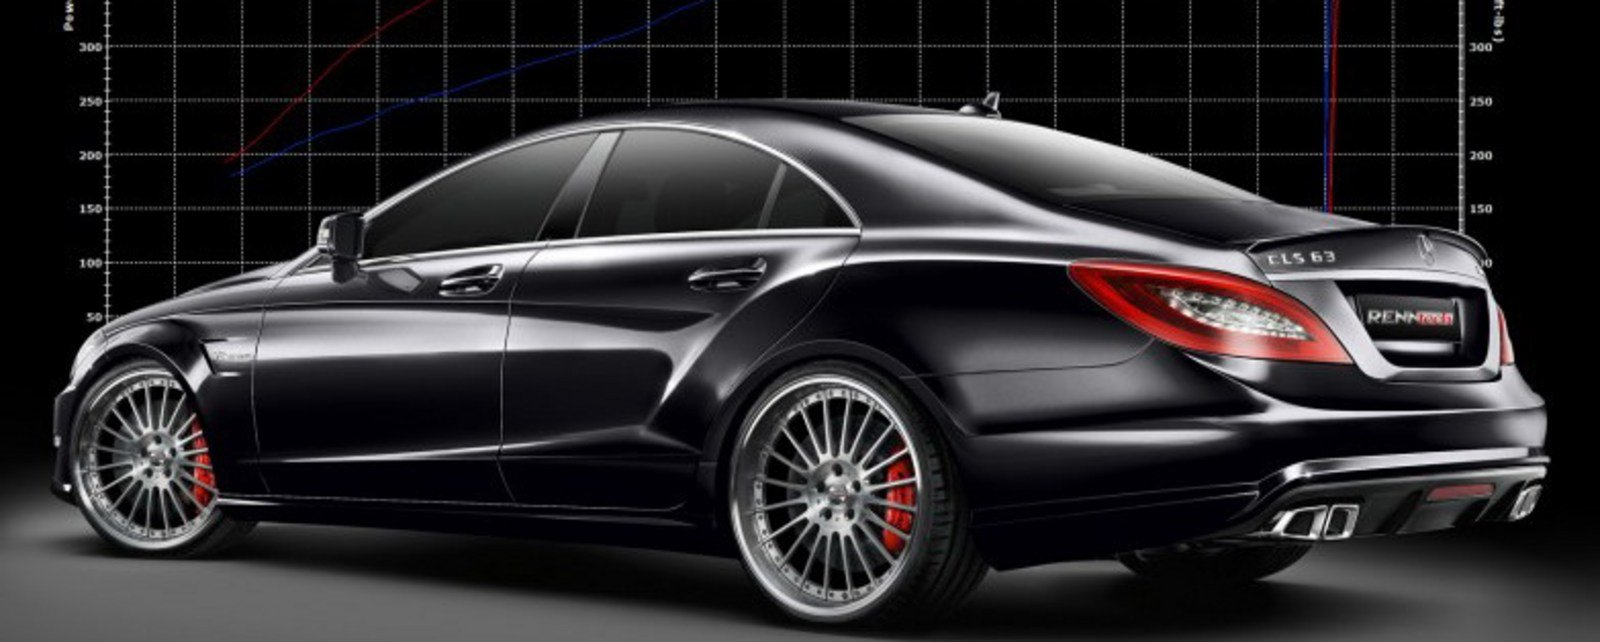 2012 mercedes cls 63 amg by renntech review top speed. Black Bedroom Furniture Sets. Home Design Ideas